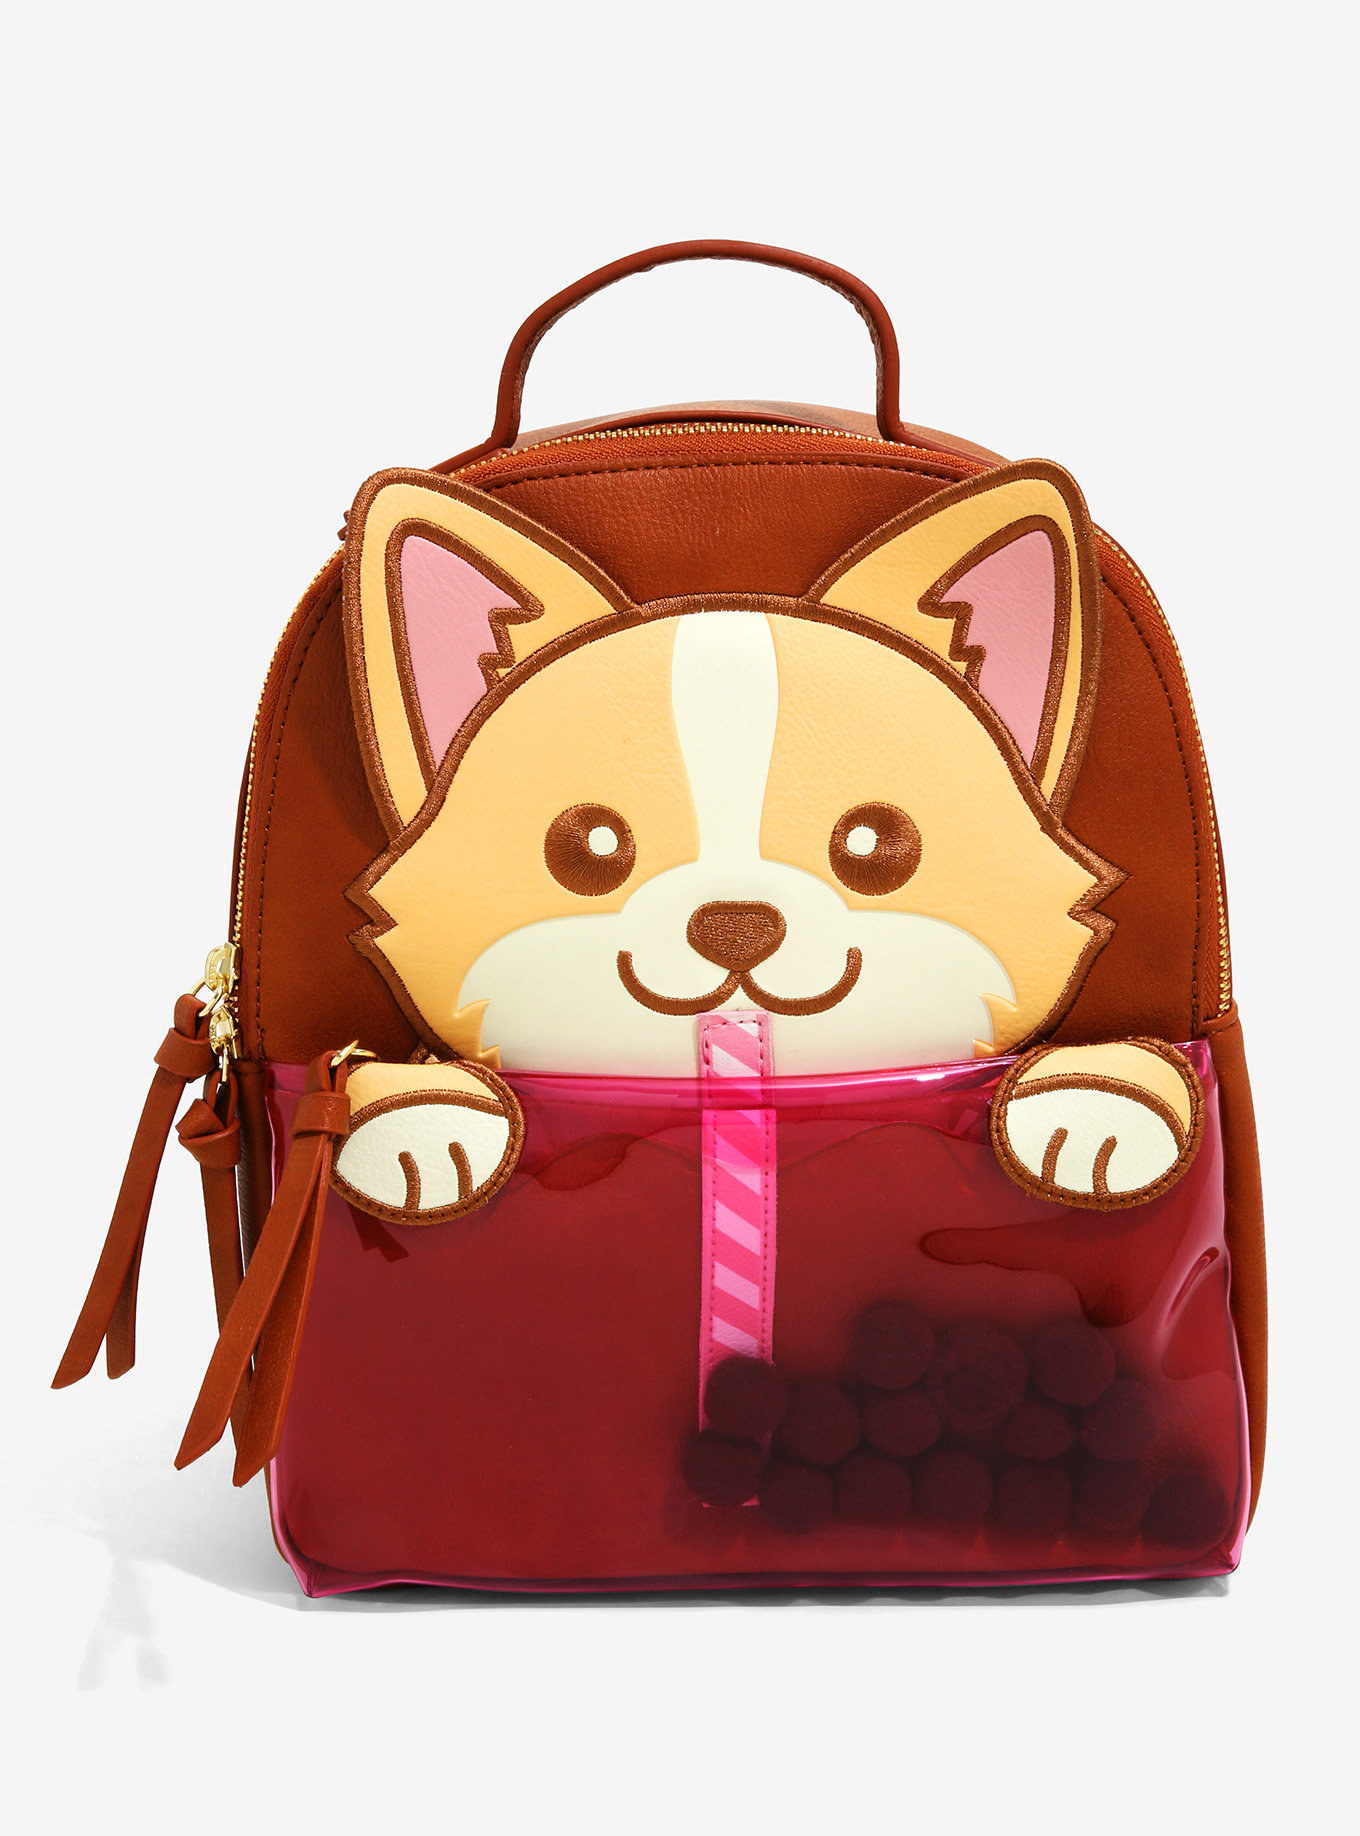 a red backpack with a corgi on it who is drinking boba from a sewn-on straw